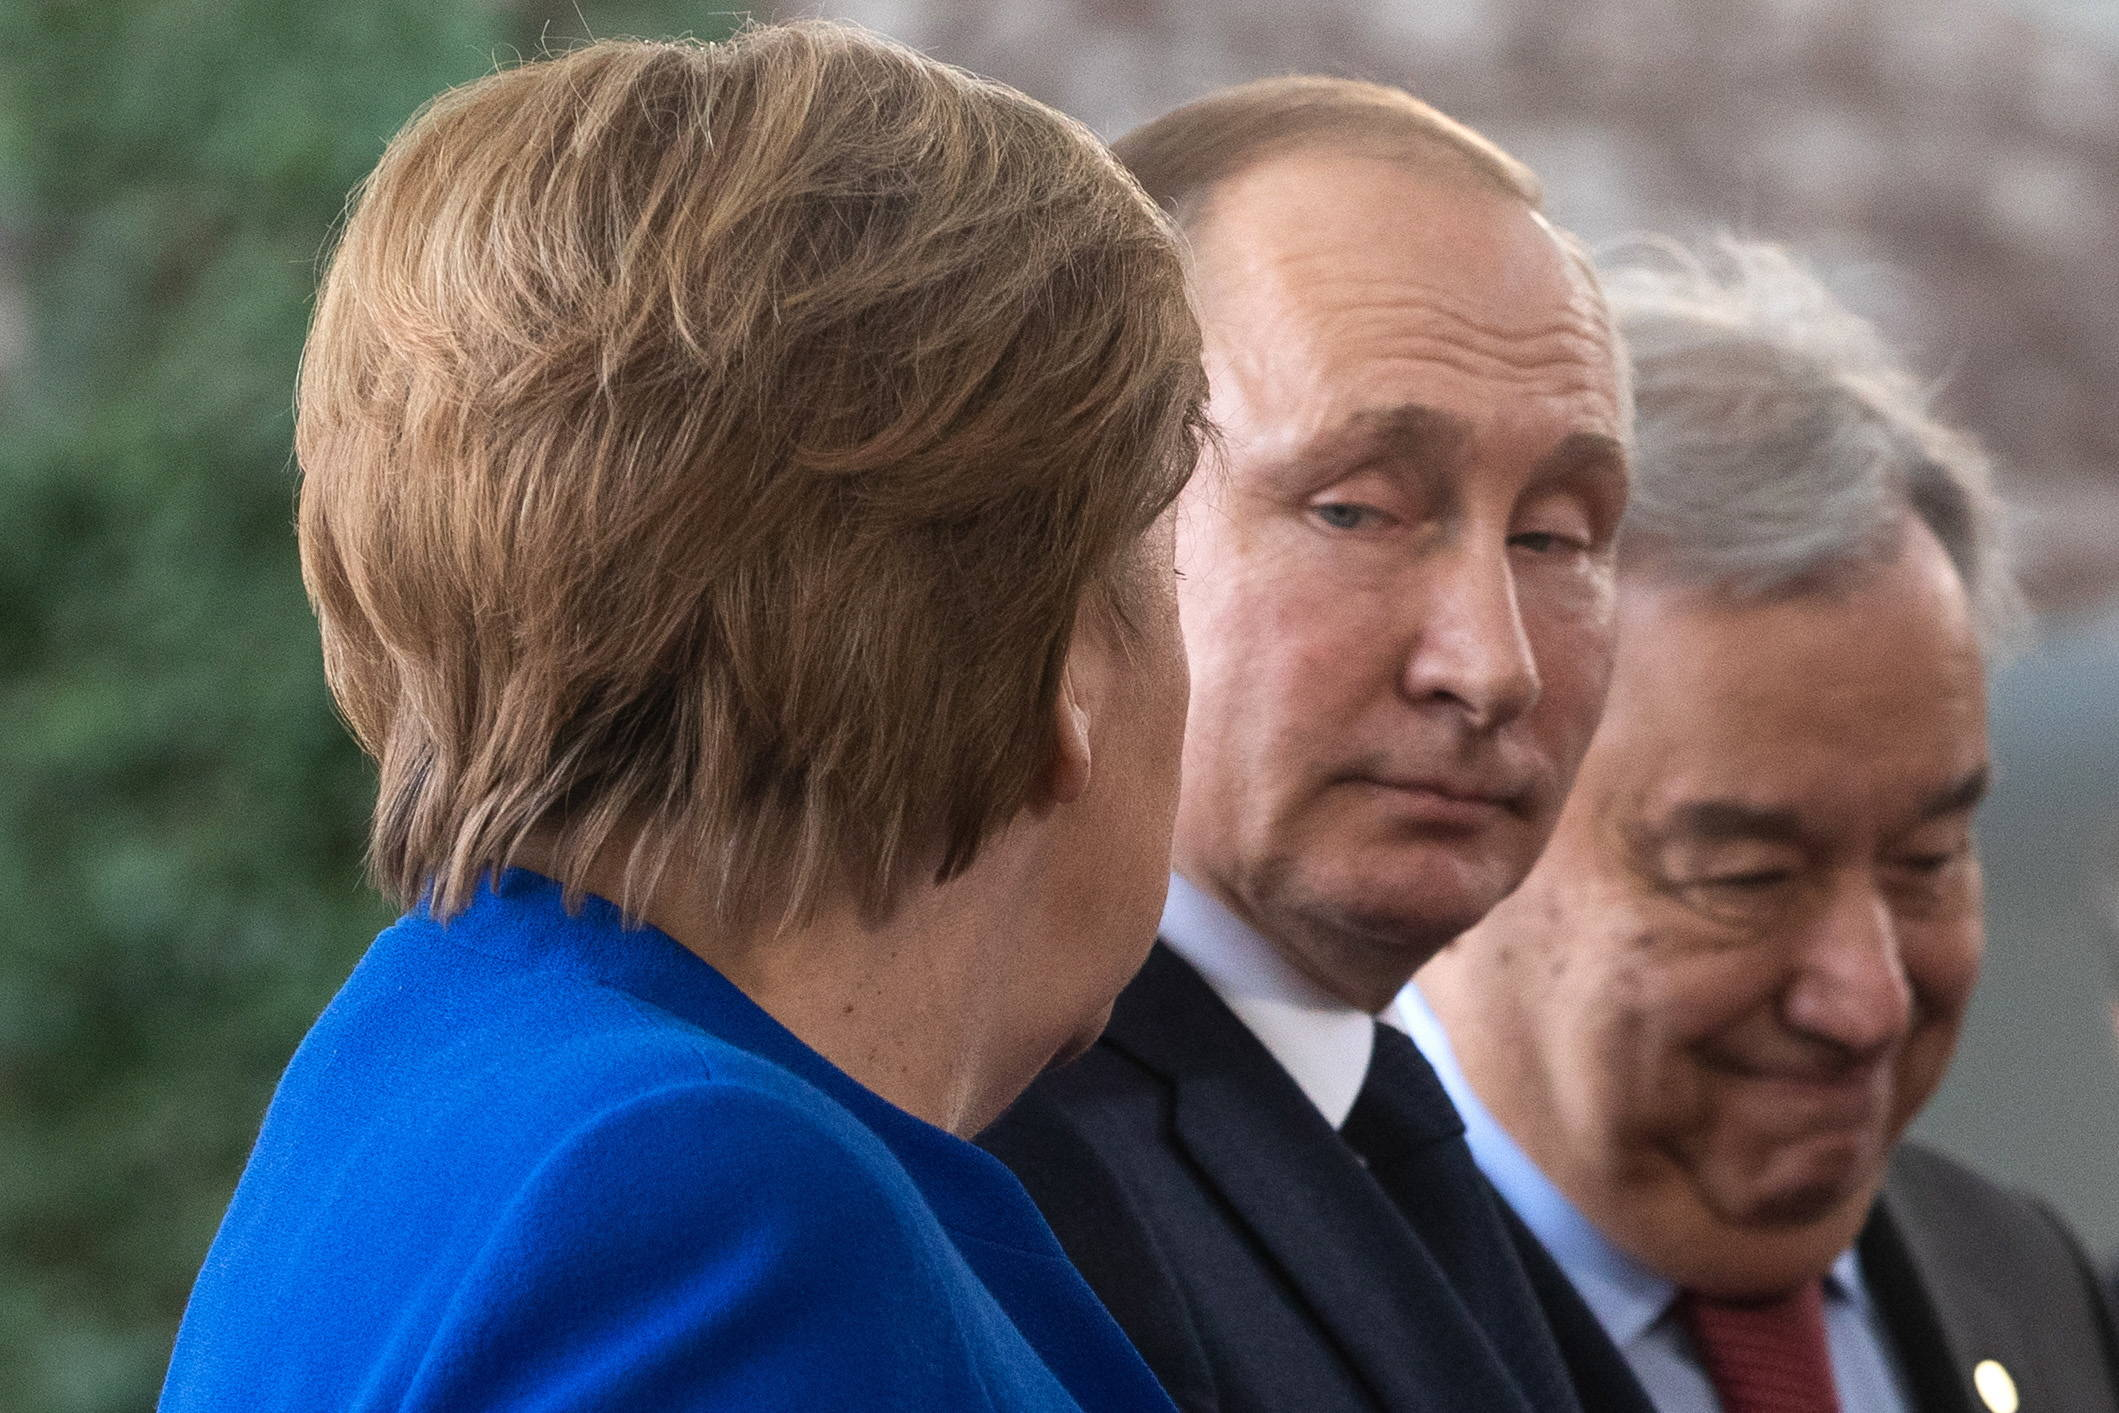 Nord Stream 2: Walking a Geopolitical Tightrope